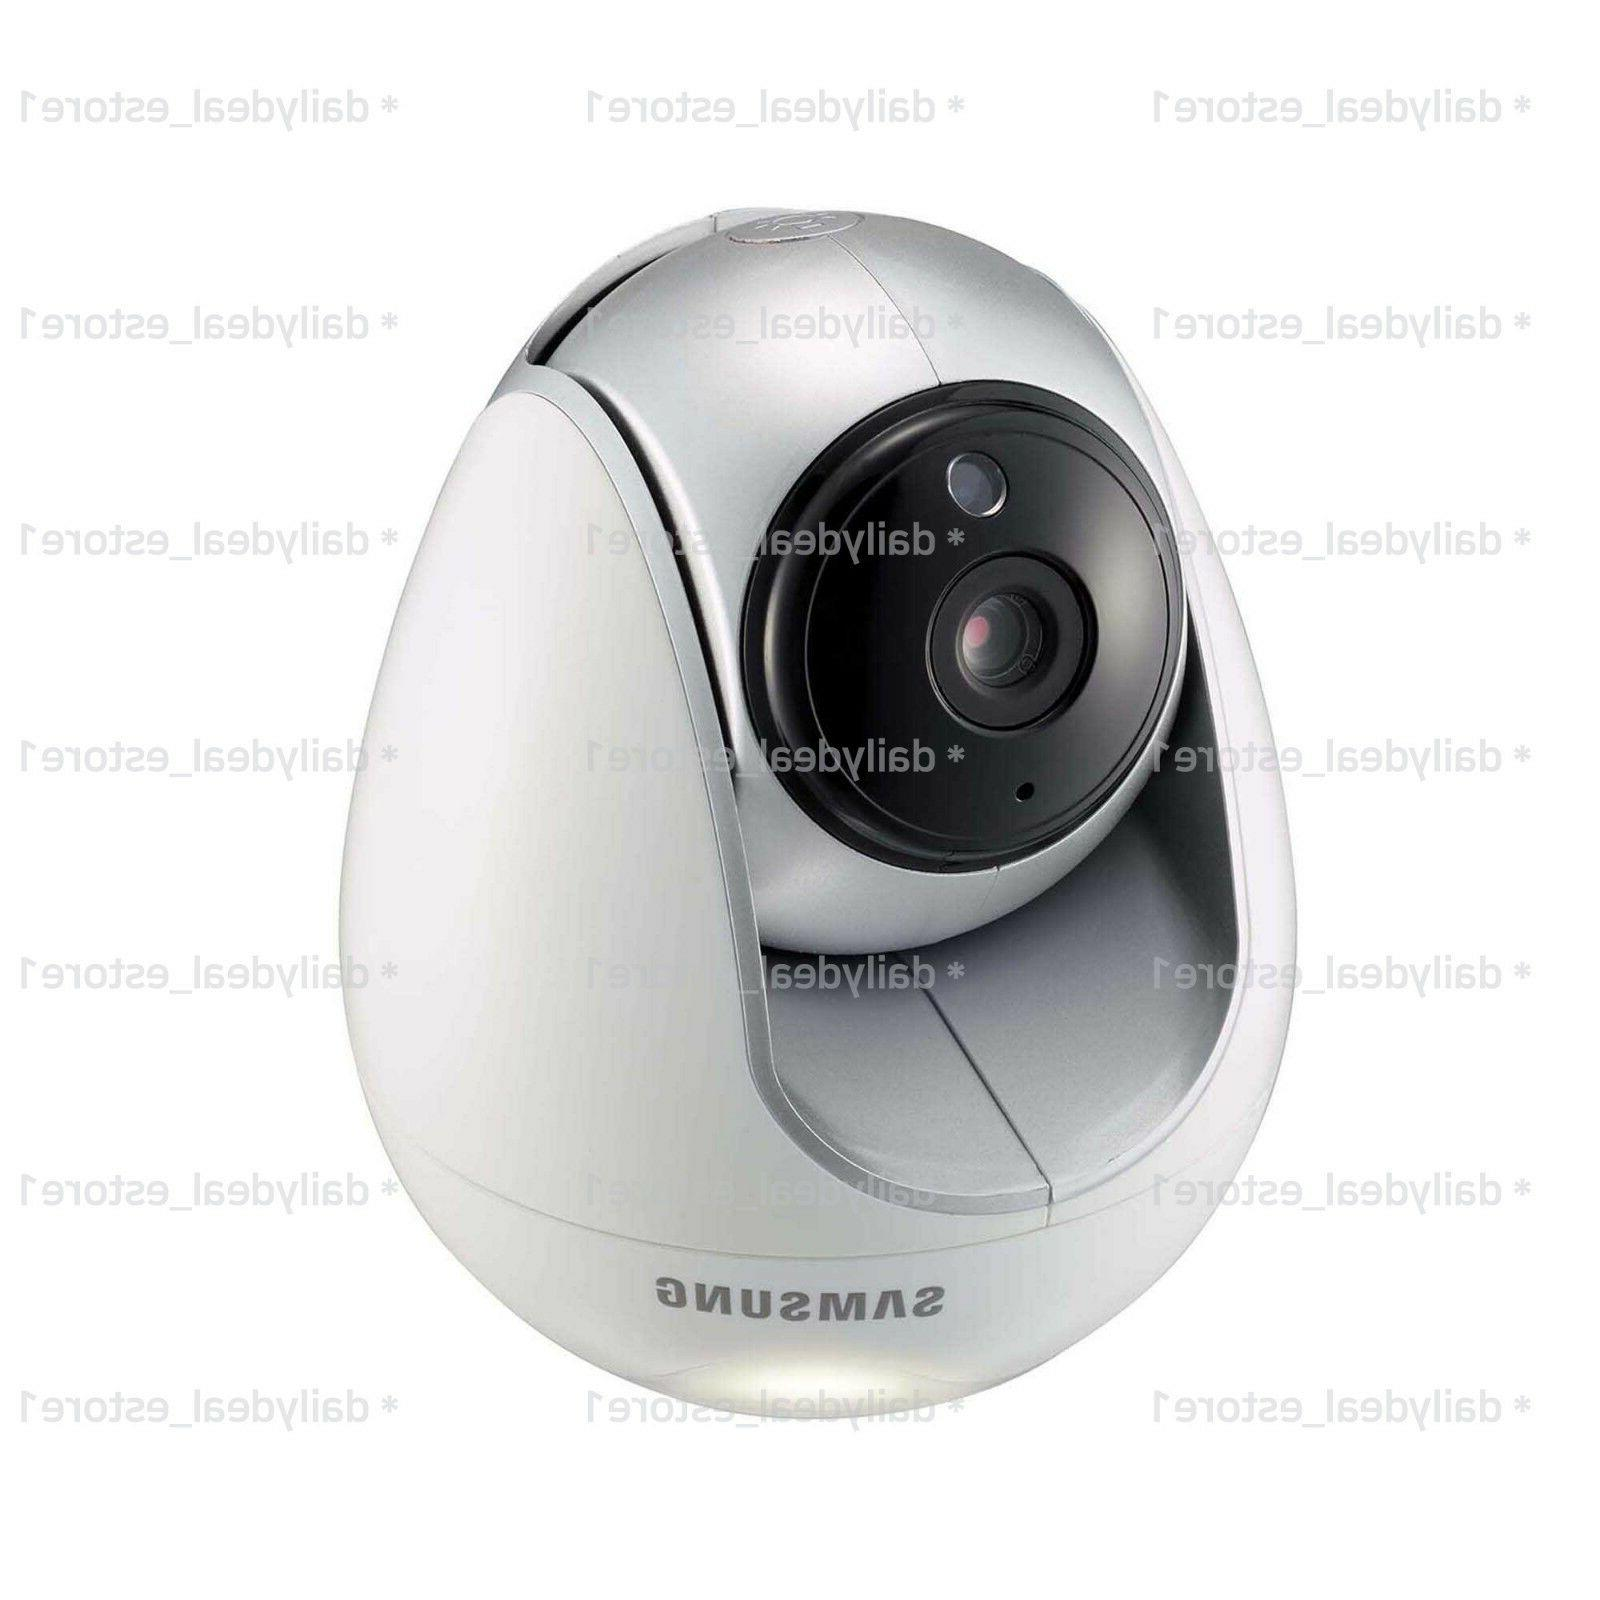 Samsung Monitoring System Camera SEP-5002 **New Other**